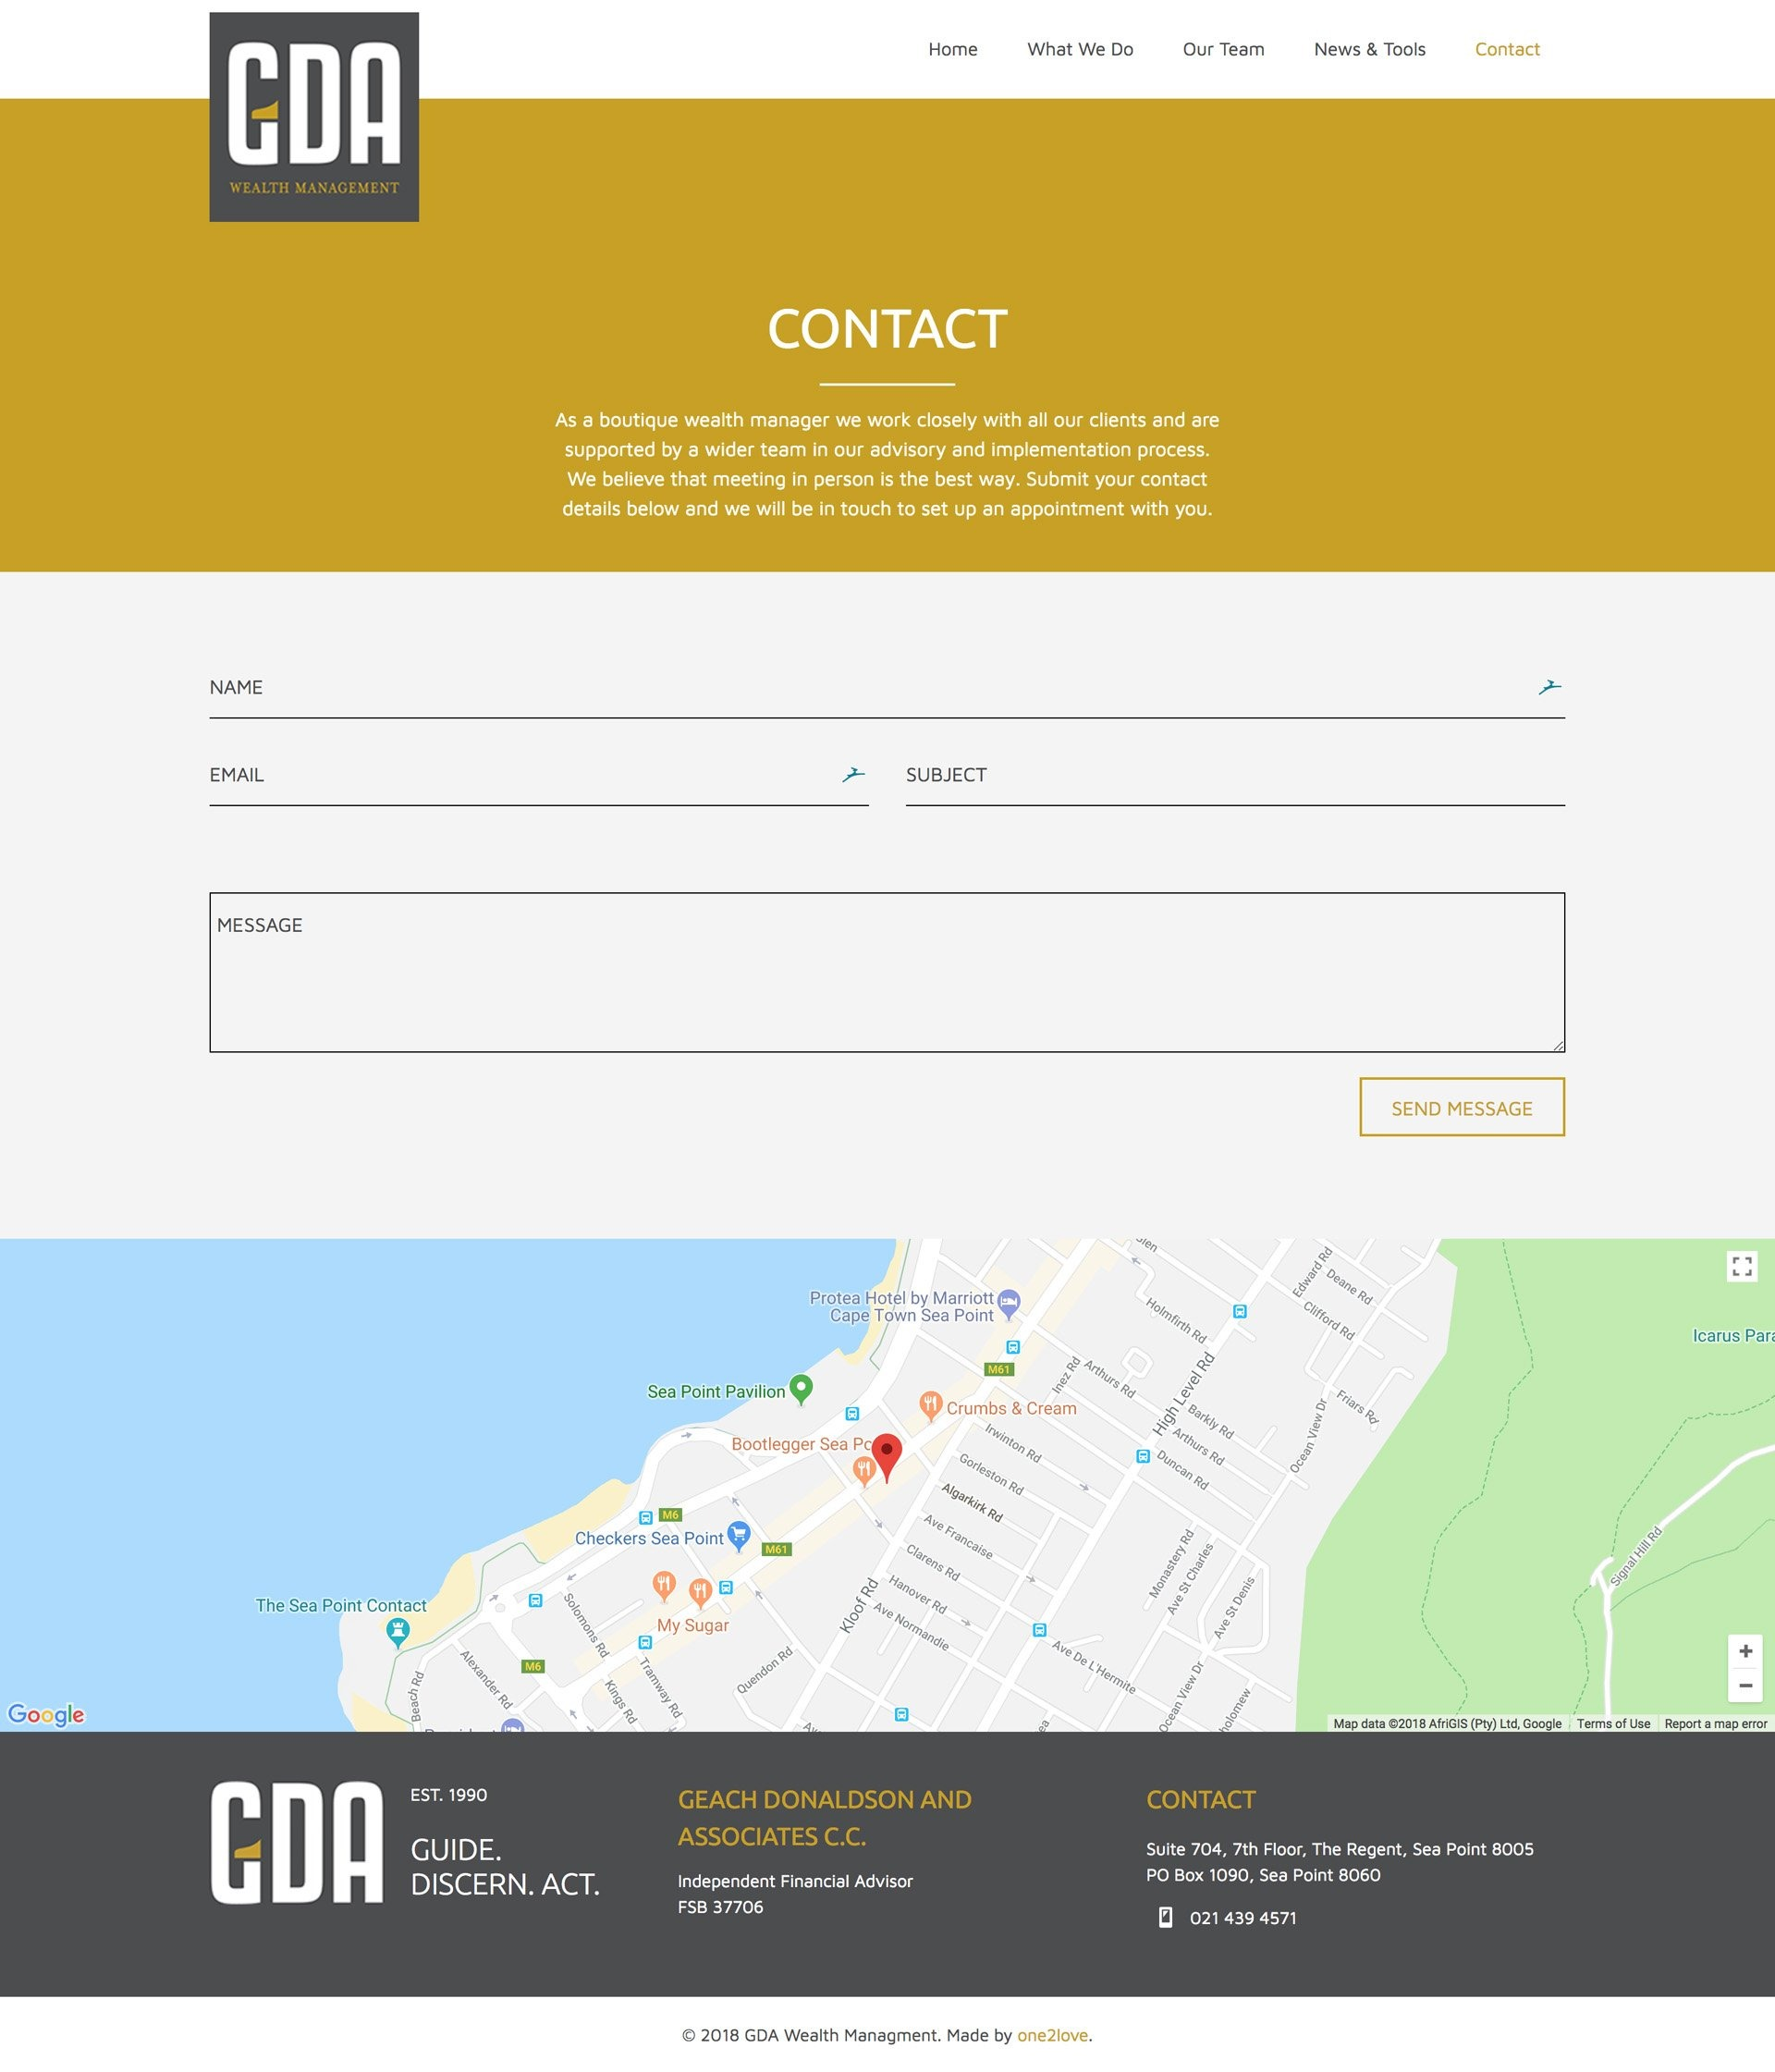 GDA Contact Page